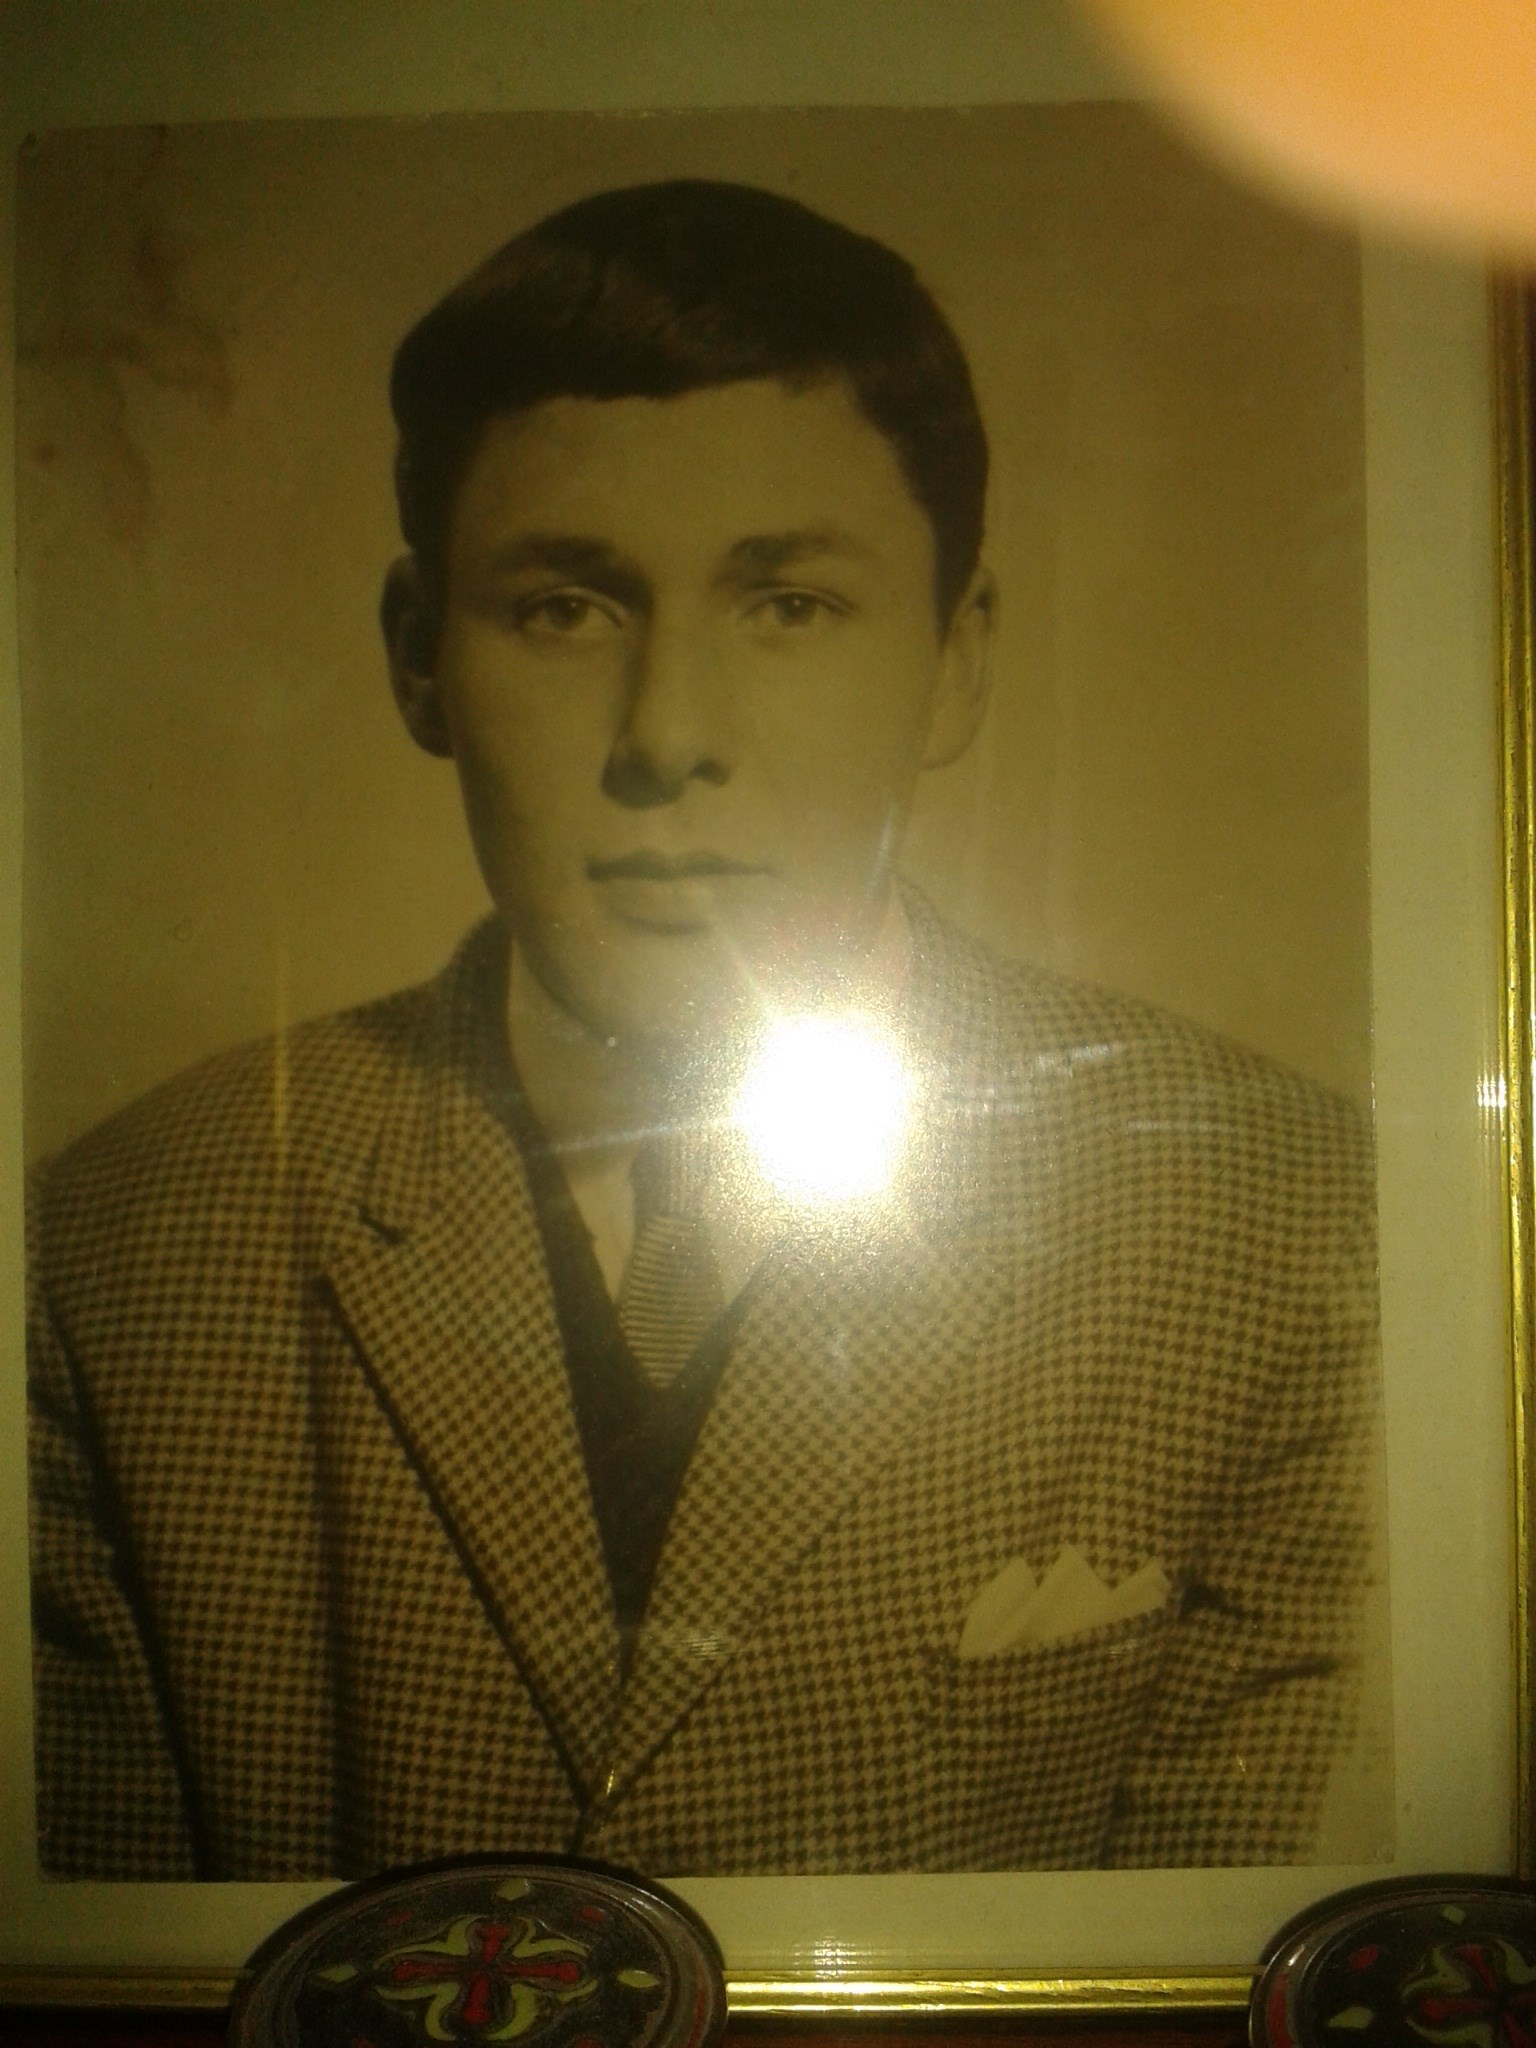 A handsome young man my dad